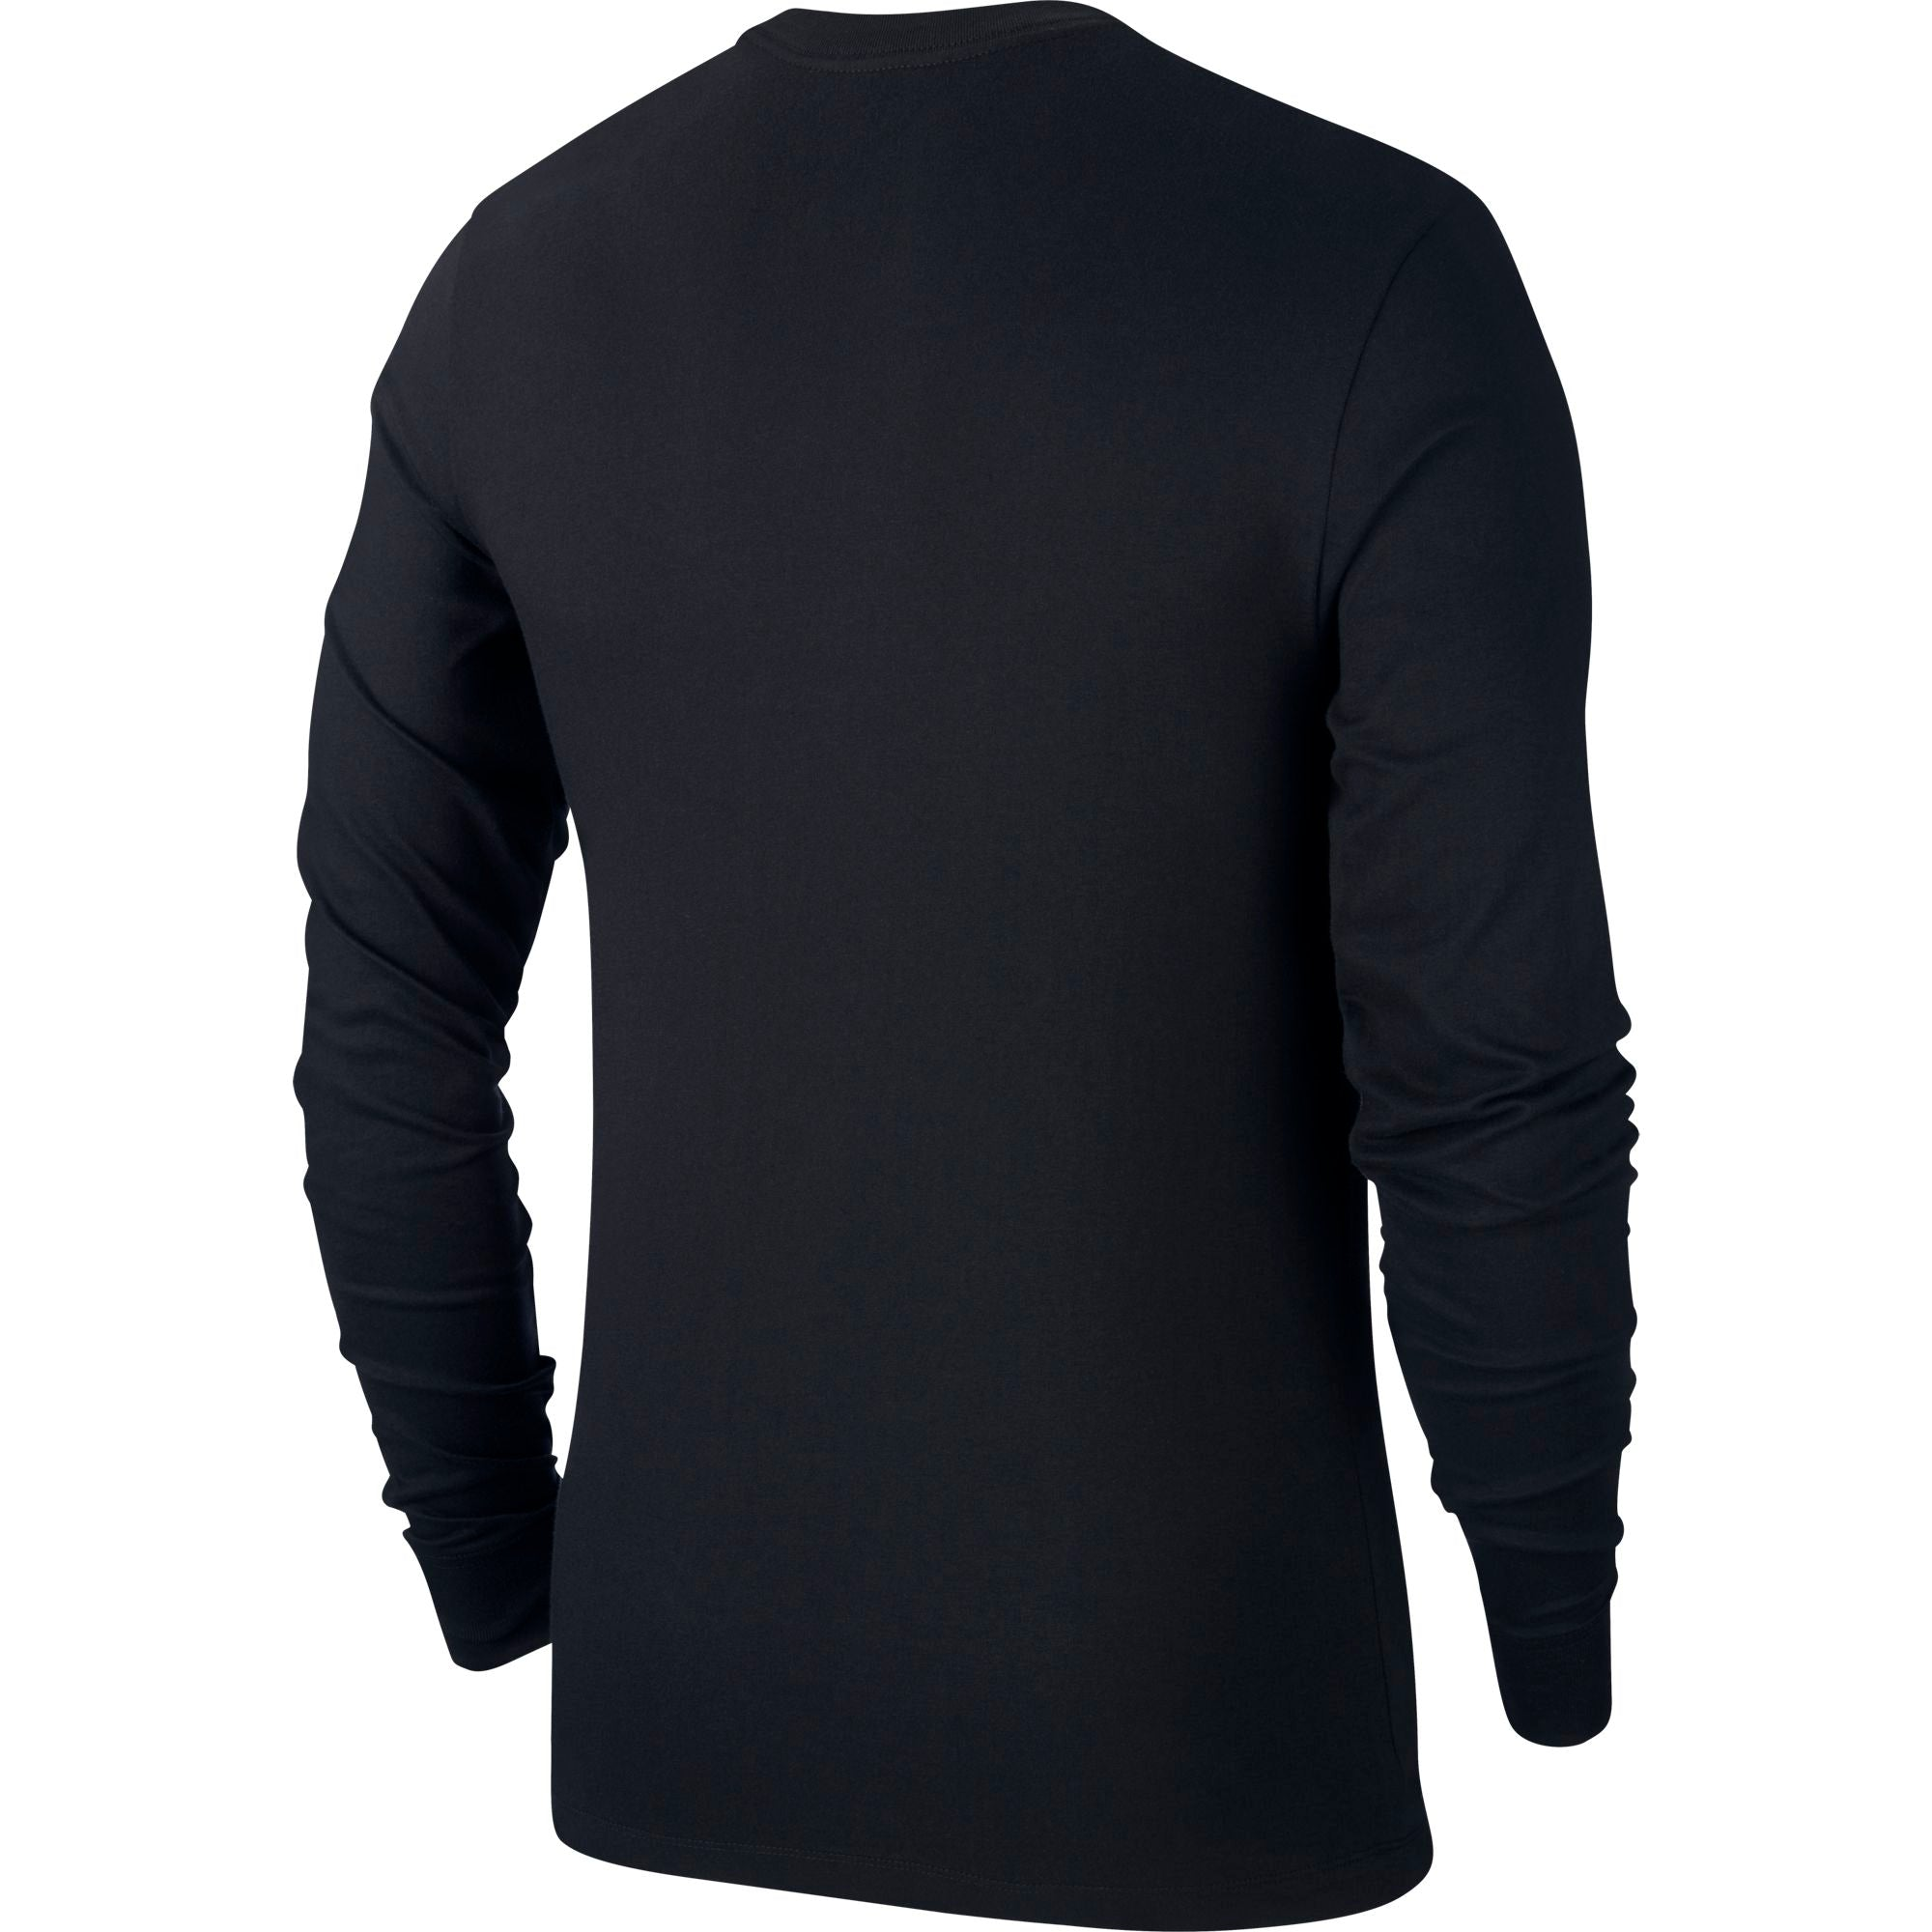 Nike Basketball Dri-fit Long-Sleeved SWISH Tee - Black